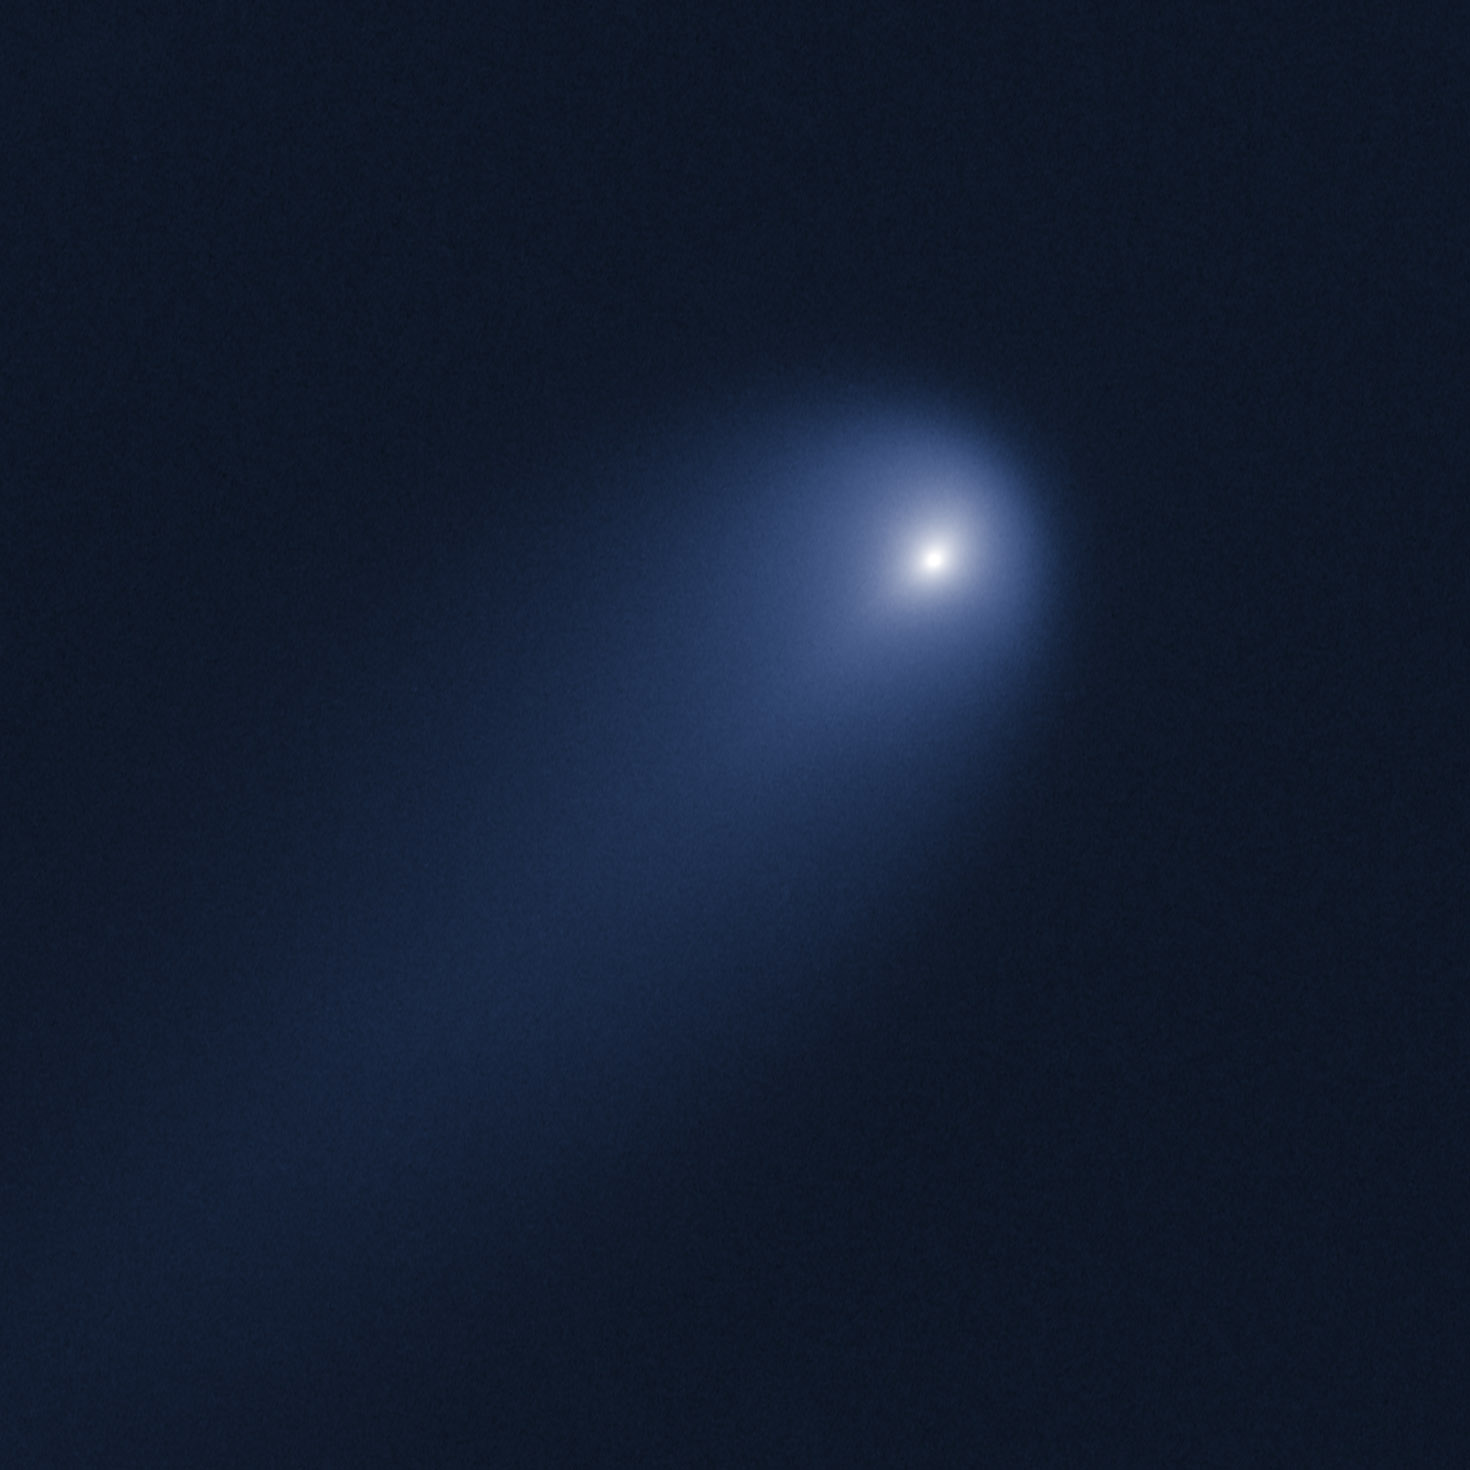 Comet ISON Isn't Huge